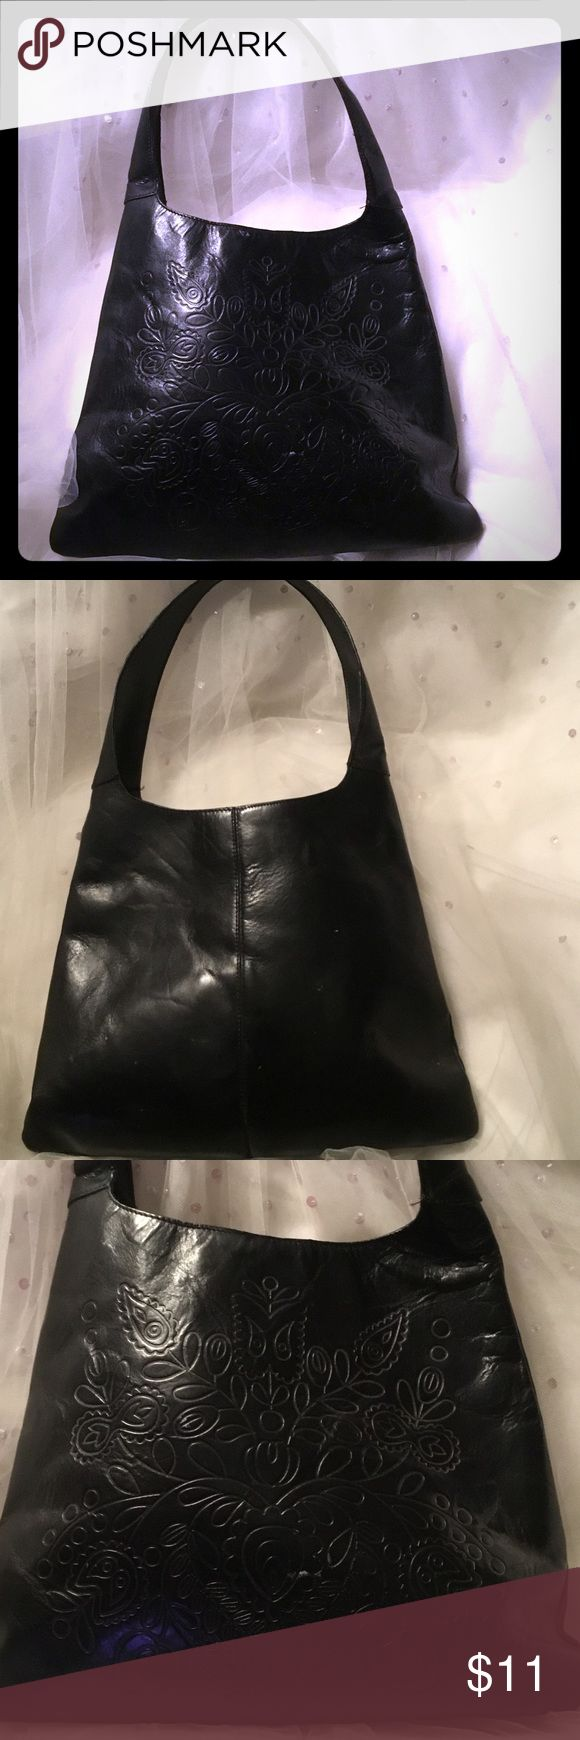 Gap purse Black leather purse with embossed design. Beautiful purse . No rips, stains . GAP Bags Shoulder Bags